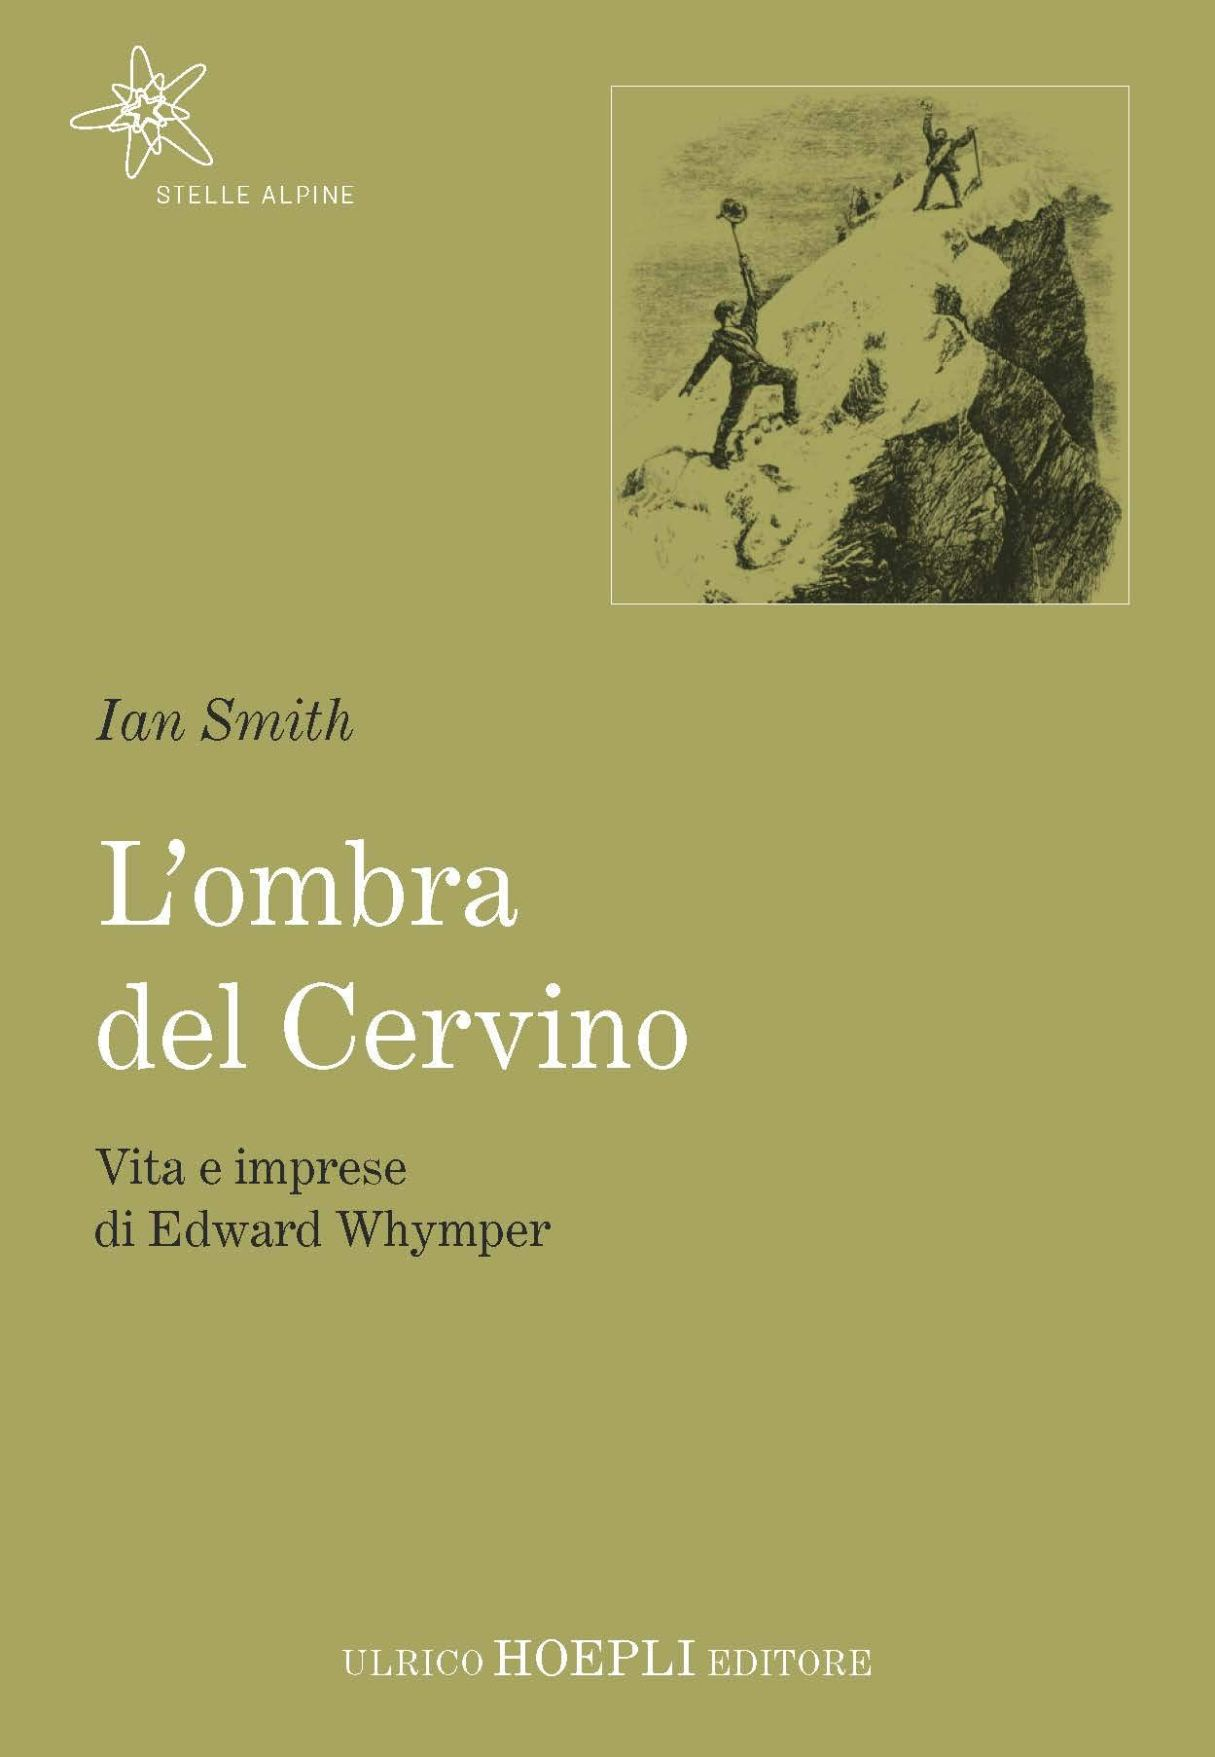 L'ombra del Cervino Book Cover